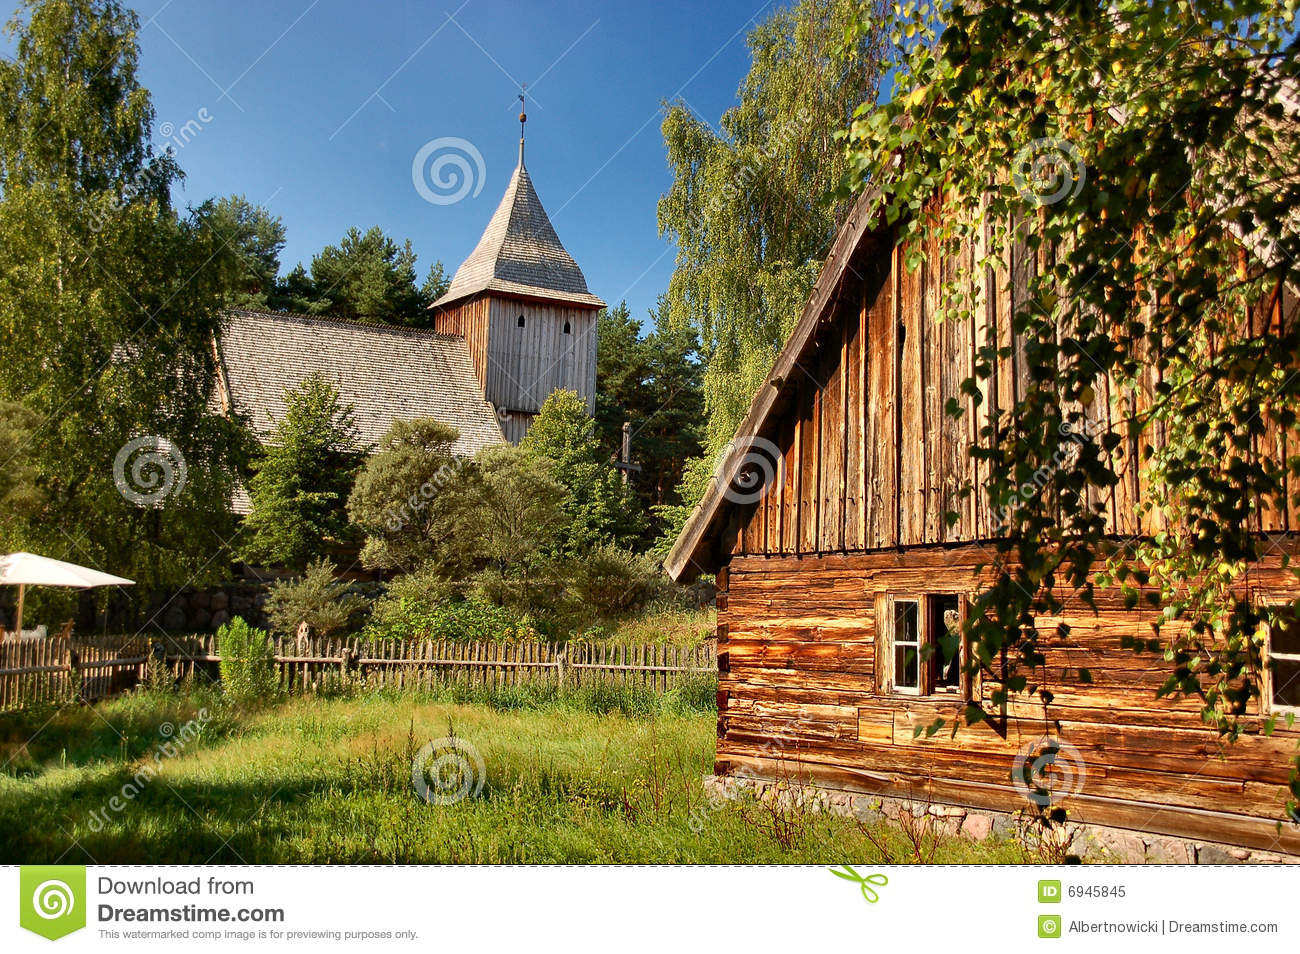 Old stylish cottage with wooden church in the back